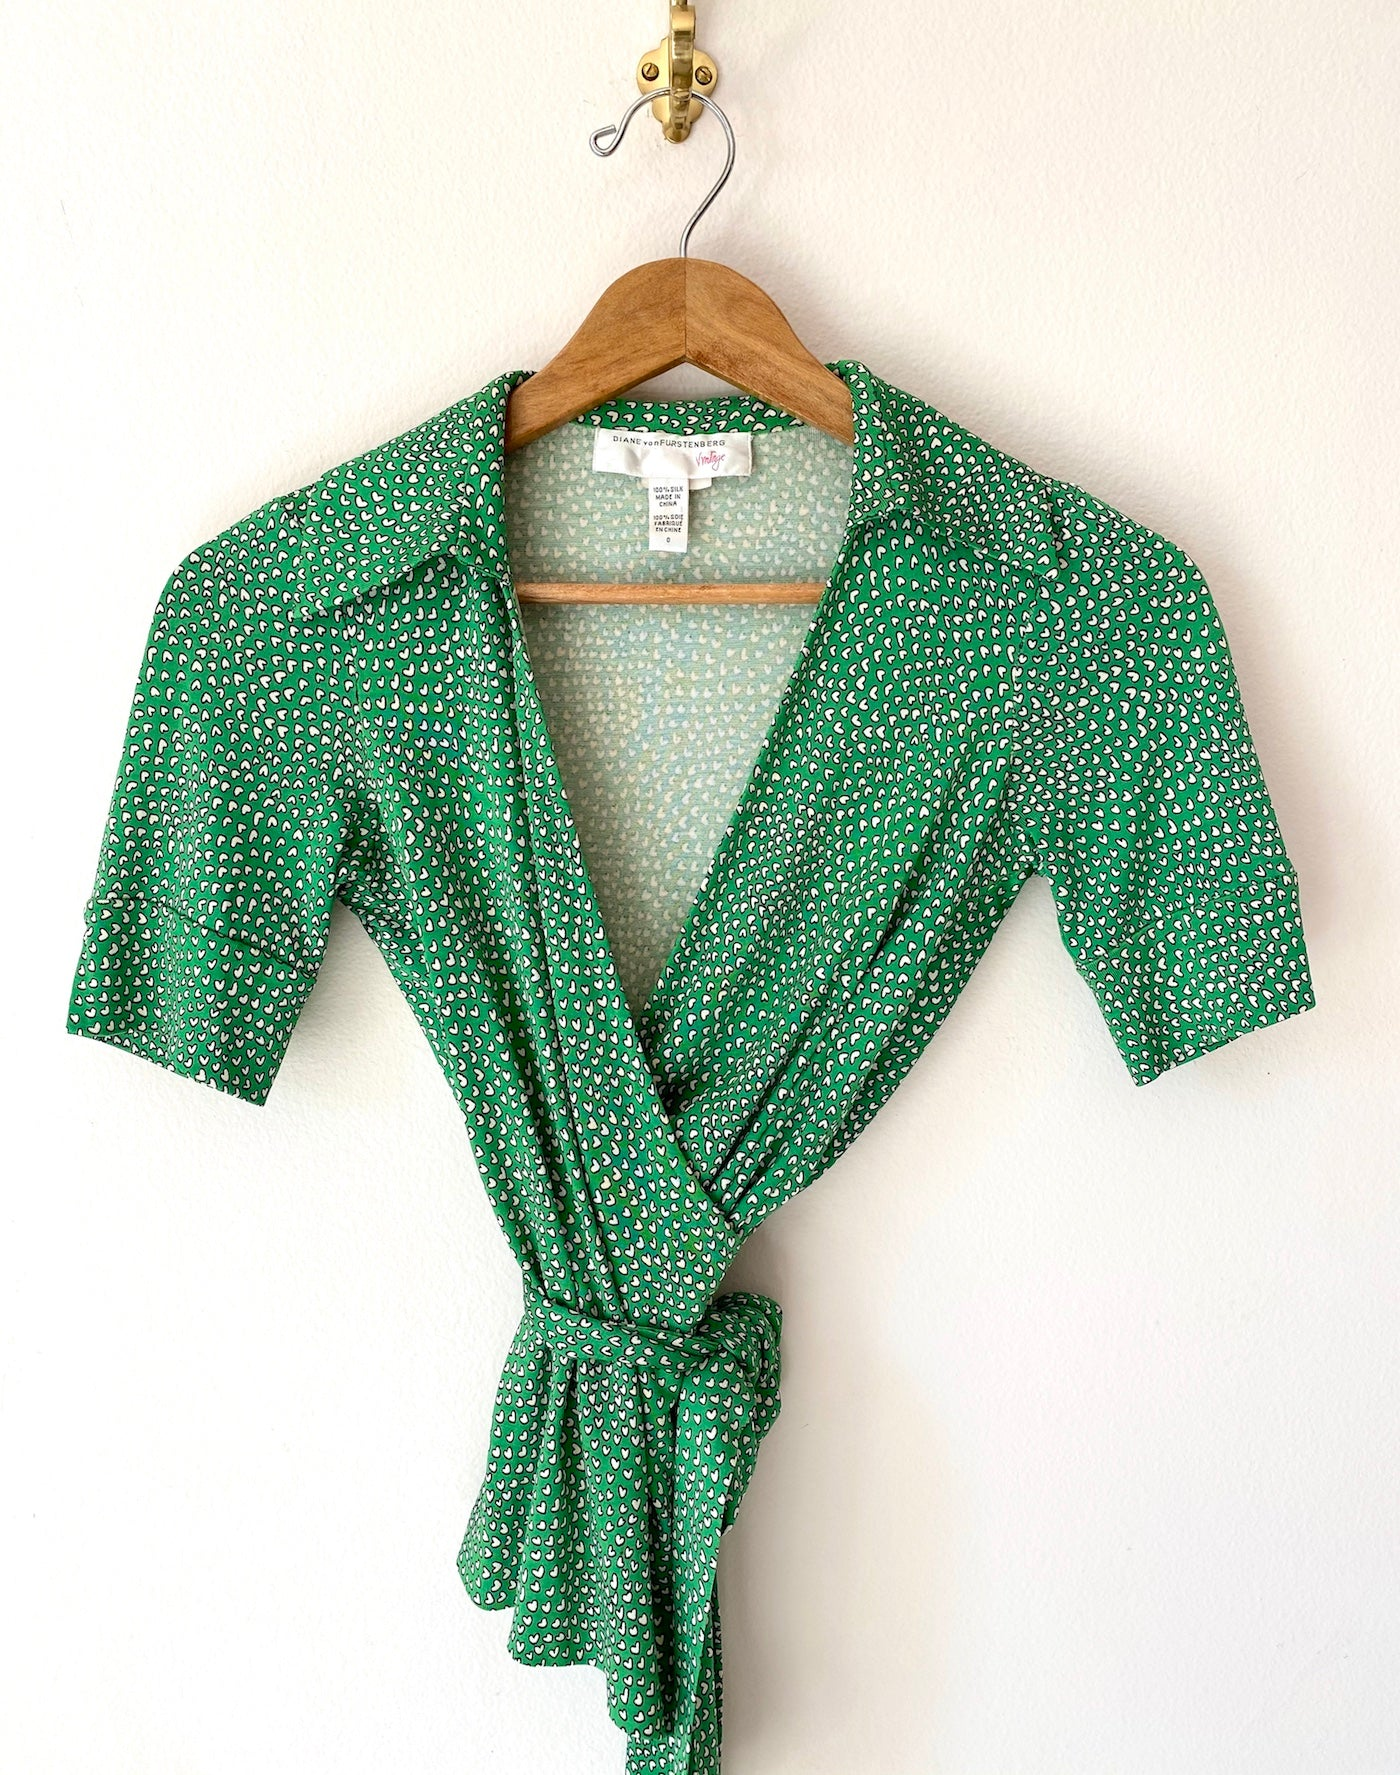 DVF Wrap Top - Green